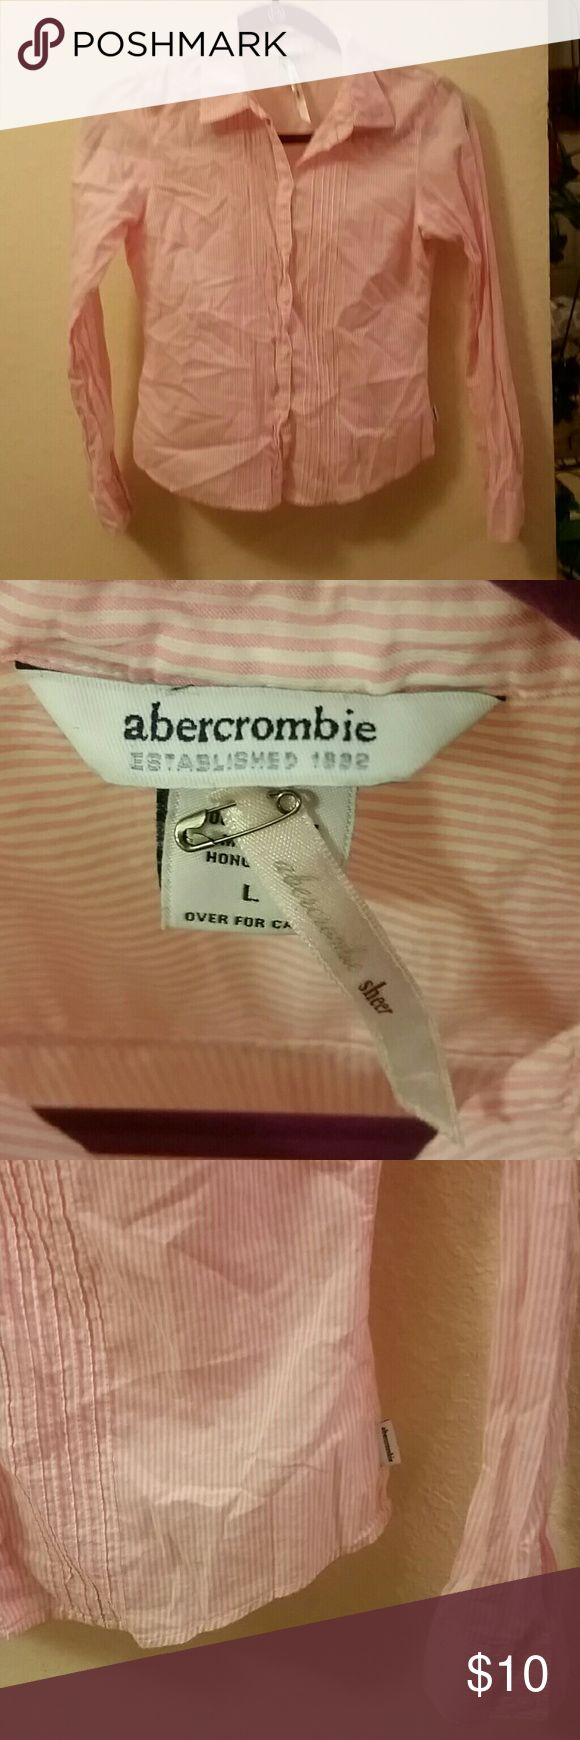 ABERCROMBIE Kids Large Sheer Pink Button Up Shirt Super Cute Abercrombie girl's top size large.  Sheer cotton,  lightweight button up light pink with white vertical pinstripe allover. In perfect condition, removed tags after purchase but never even worn!  Thanks for looking and please check out my closet for more great deals and bundle discounts! :-) Abercrombie & Fitch Shirts & Tops Button Down Shirts